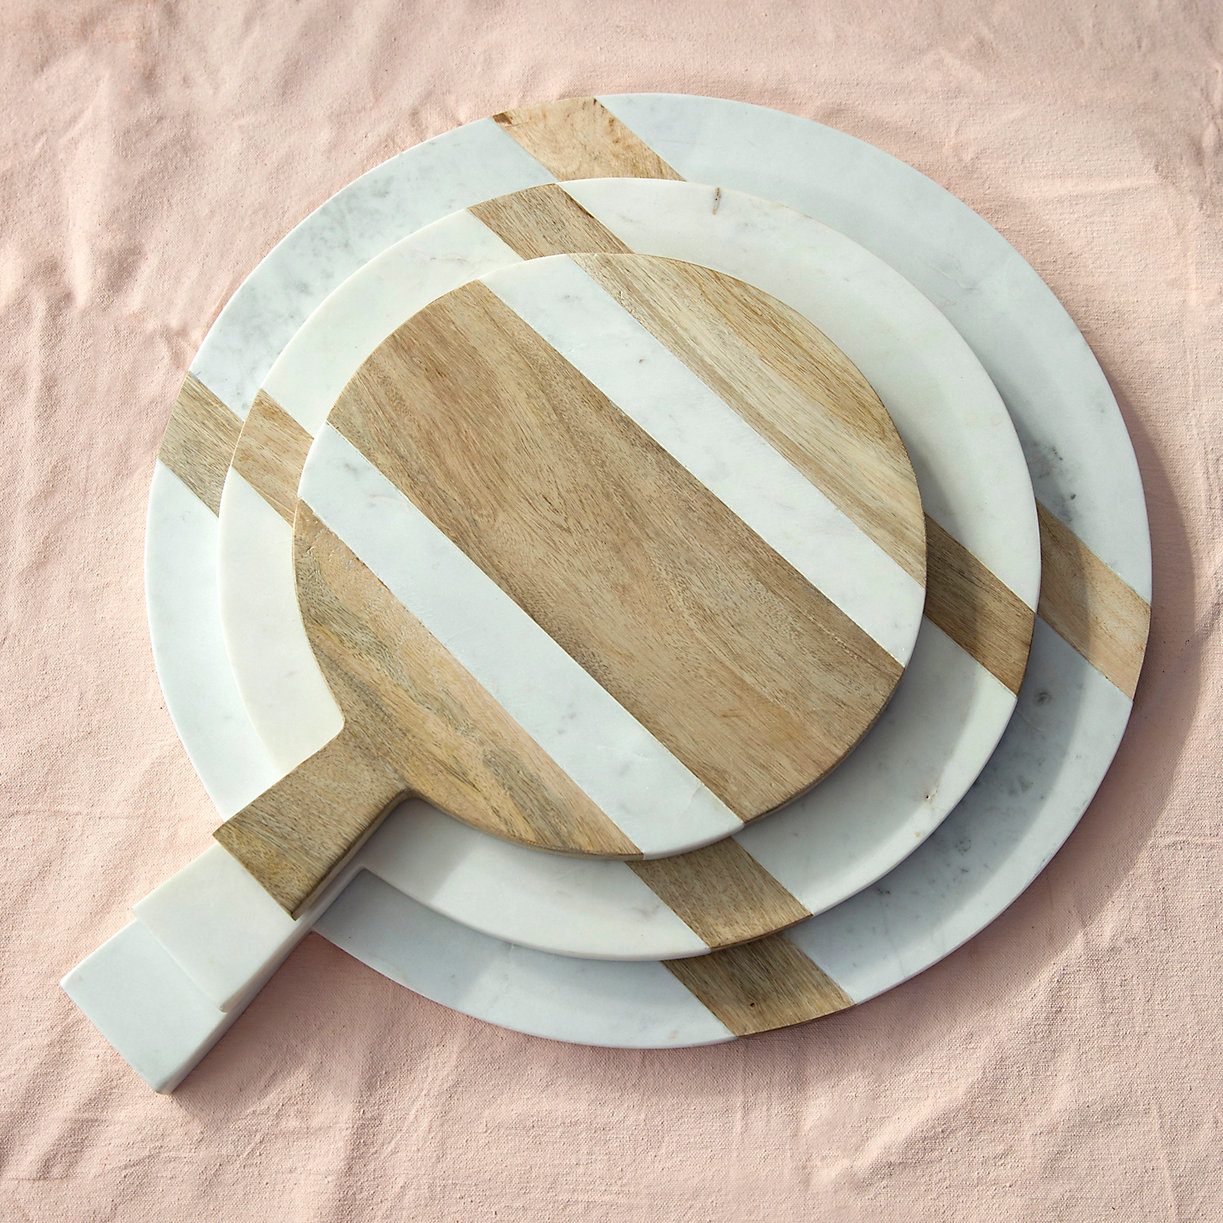 marble-and-wood-serving-board